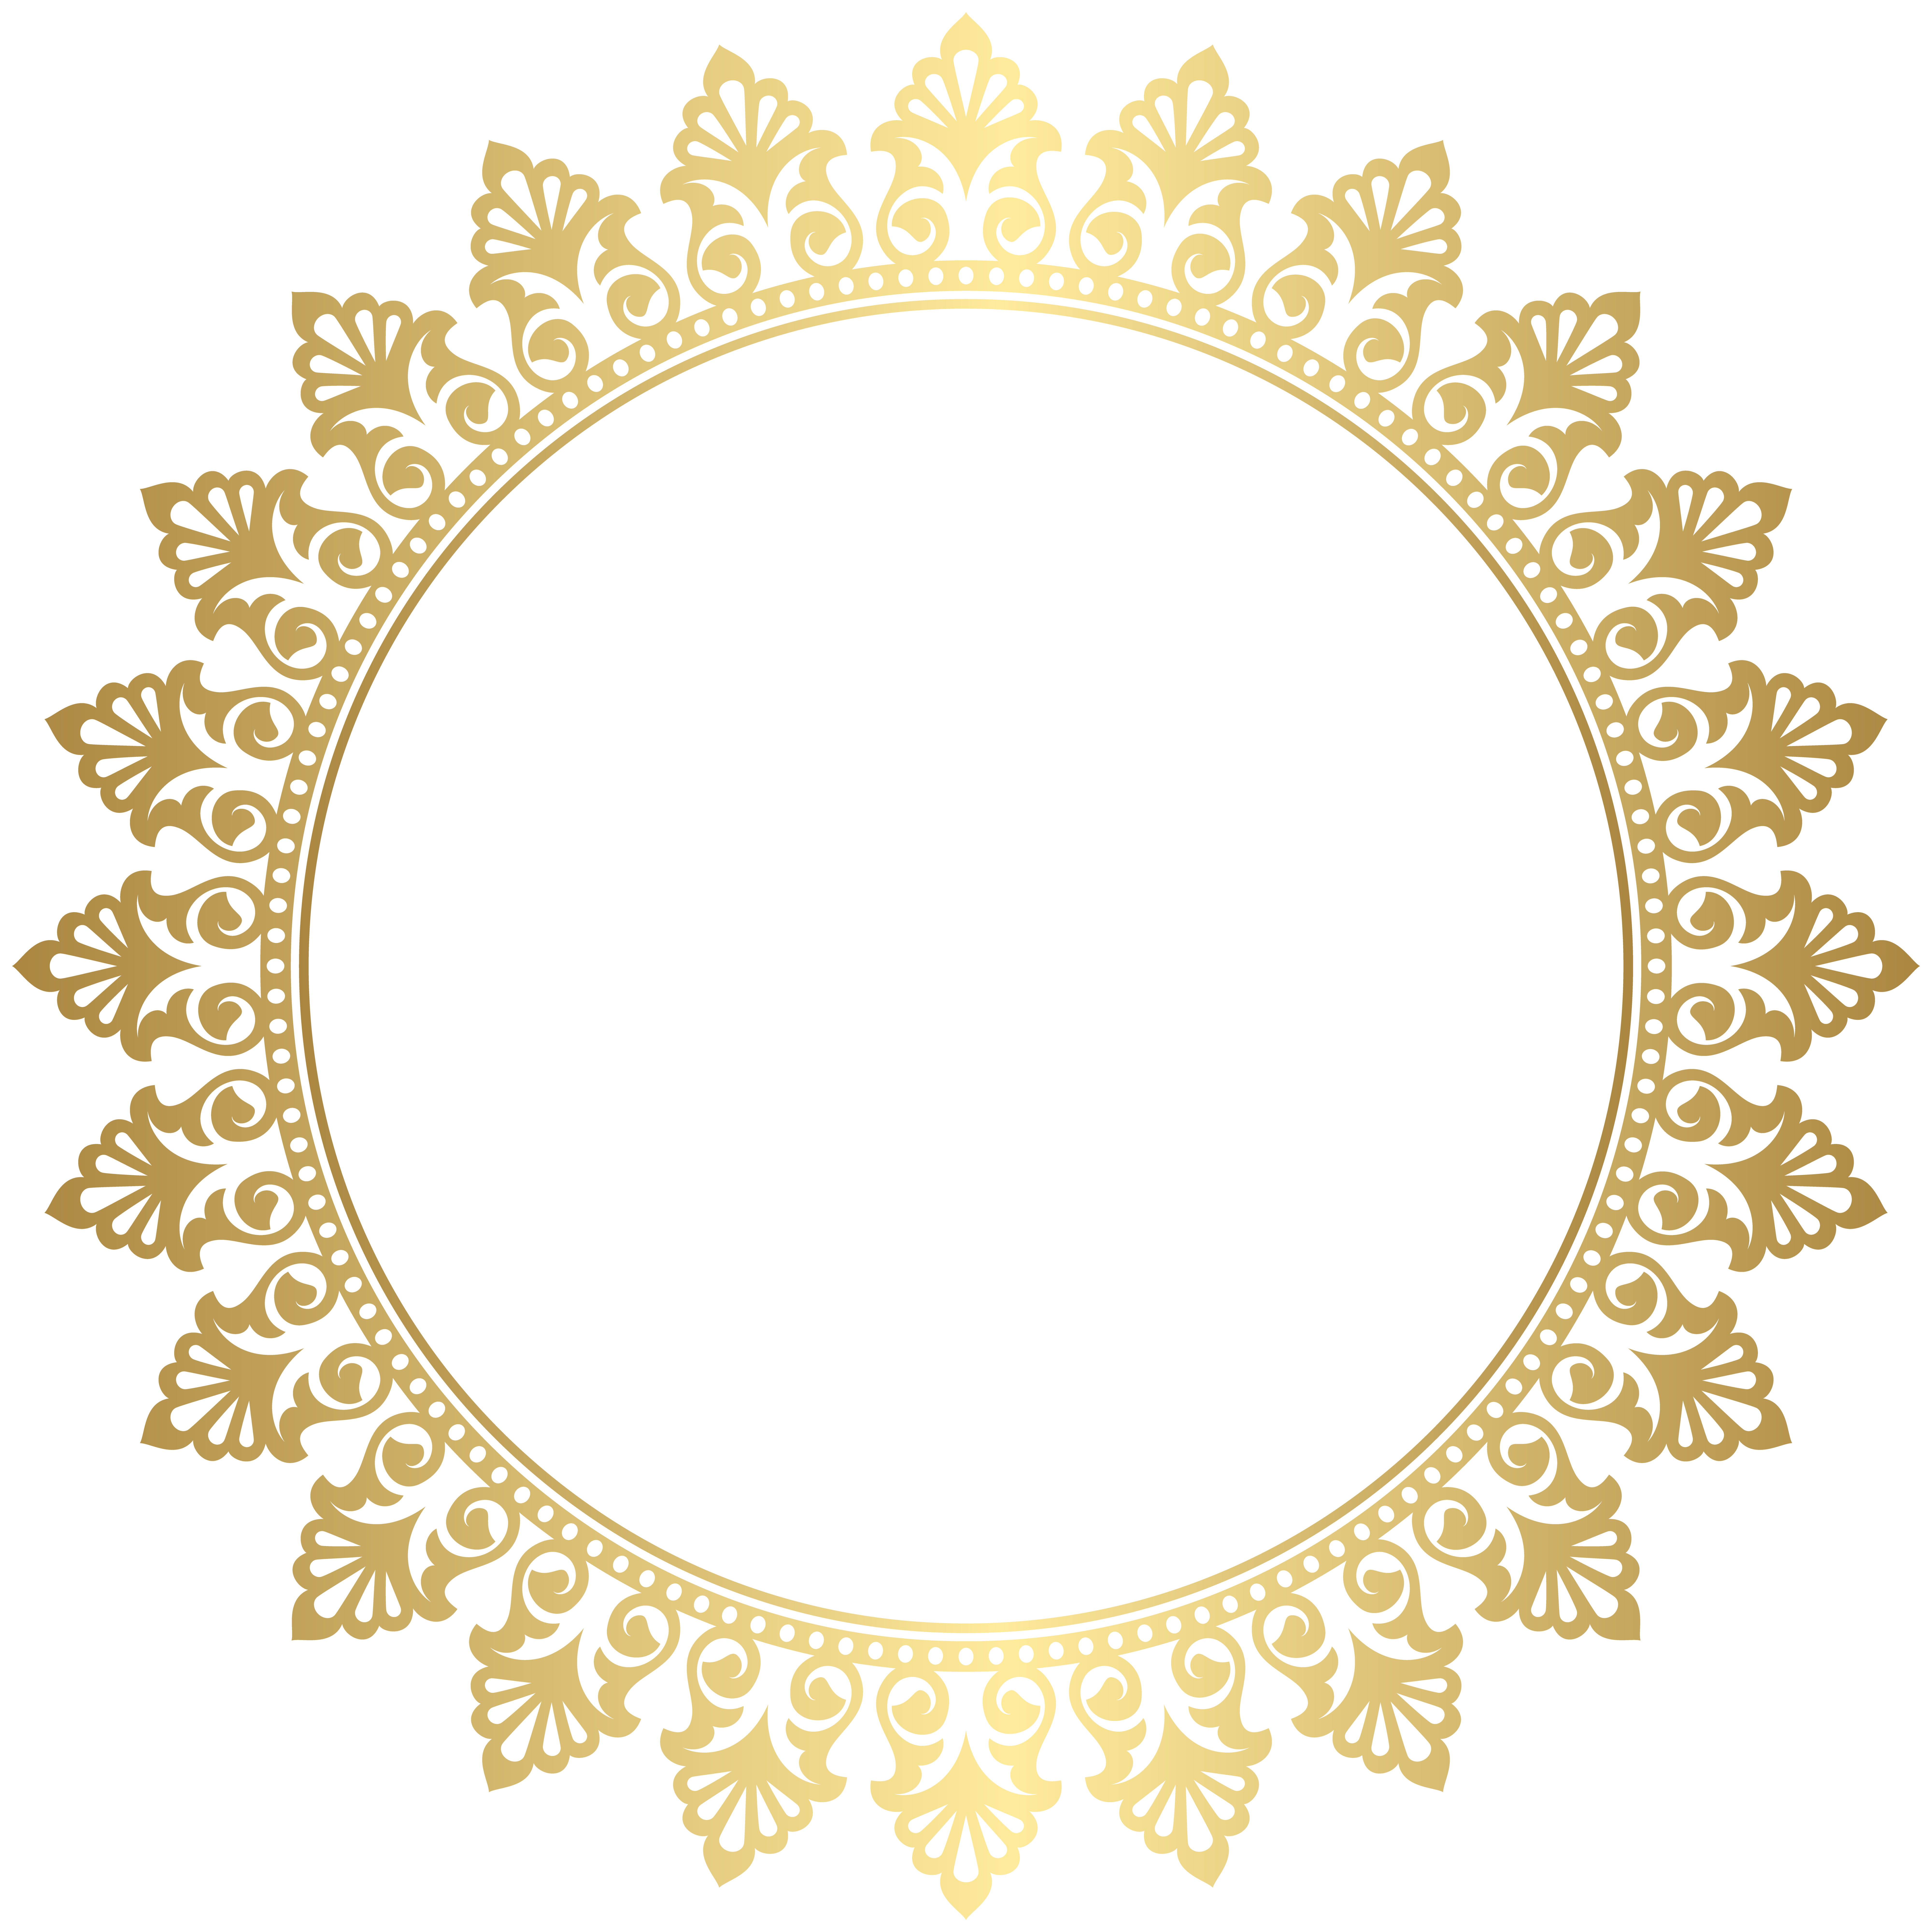 Round circle gold border with white center clipart svg library Pin by galit cohen on כרטיסים | Frame clipart, Round border ... svg library